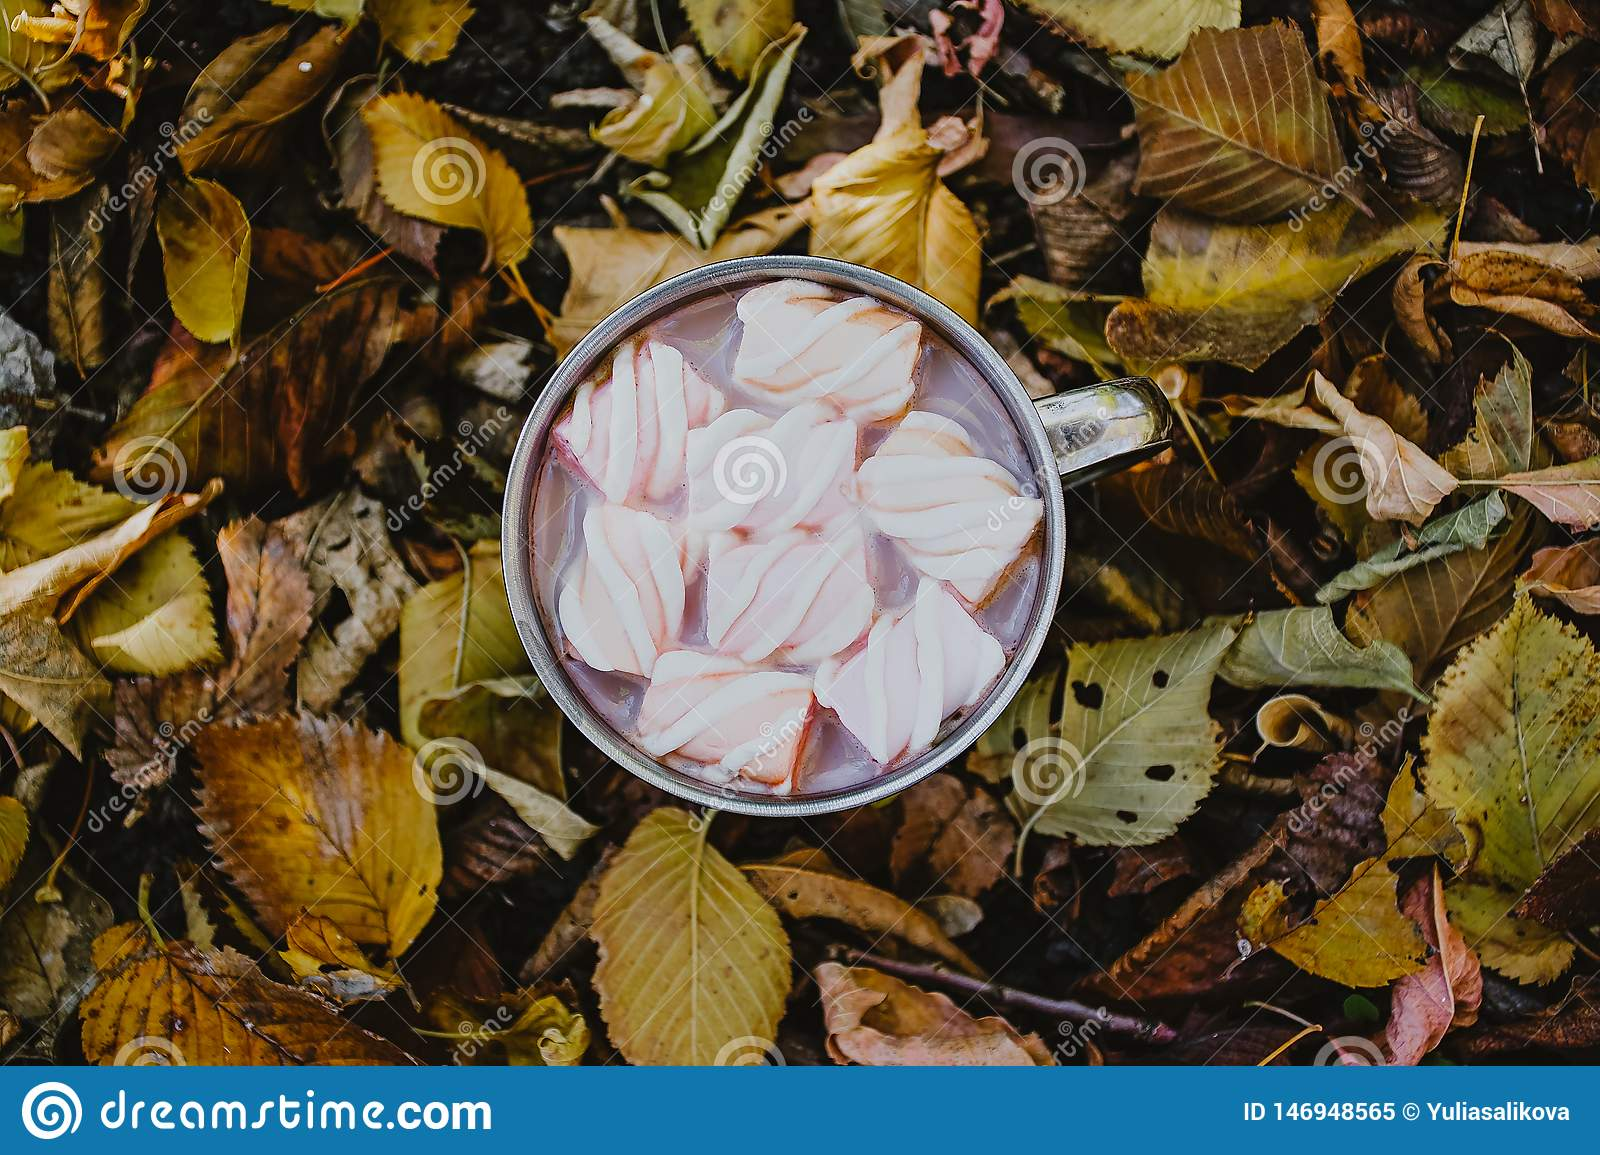 A cup of coffee with marshmallows on a background of yellow leaves